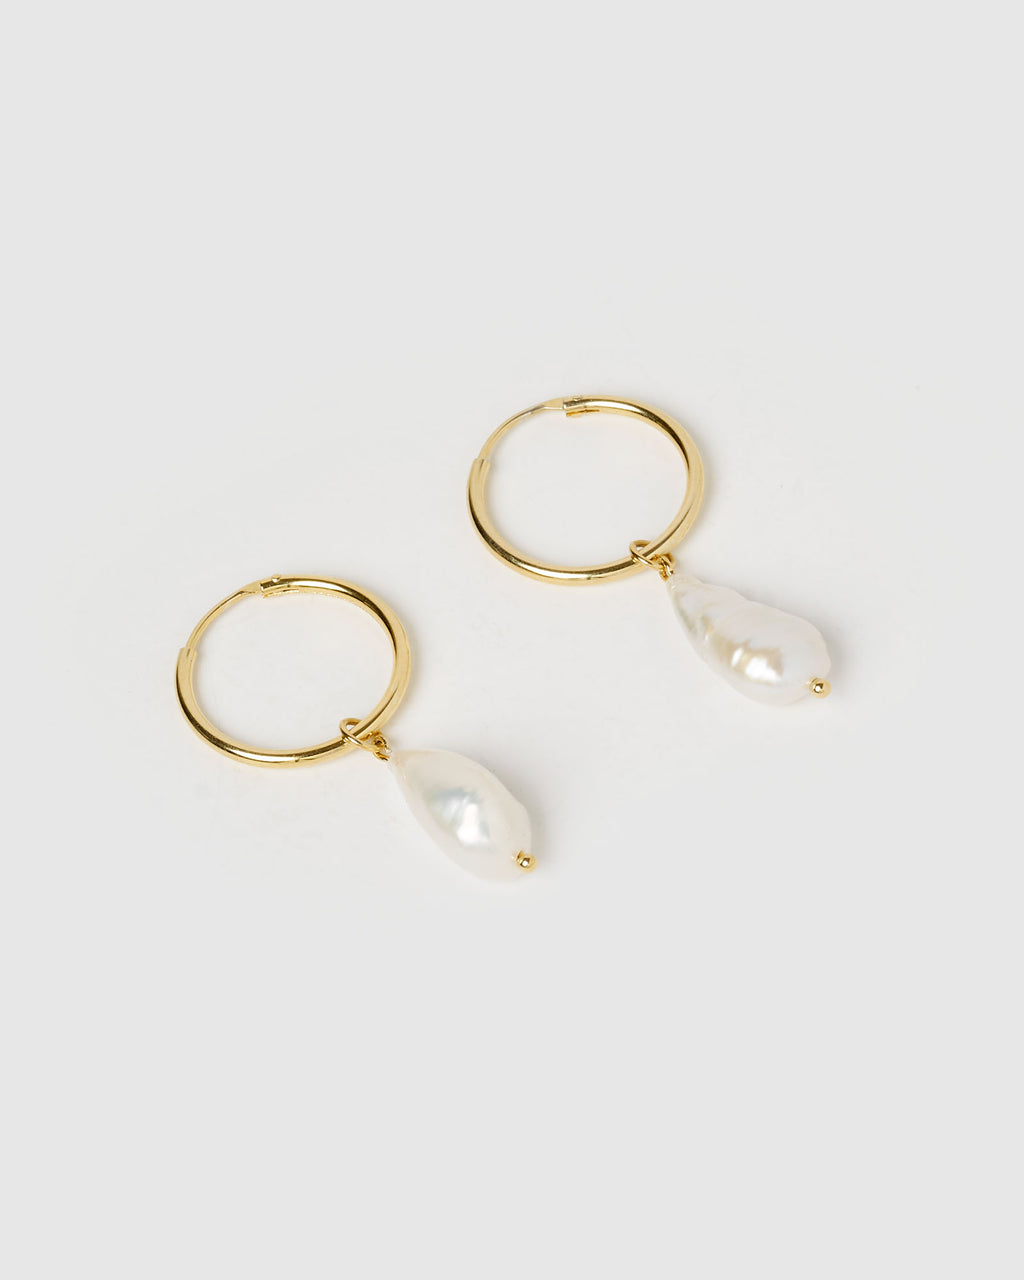 Izoa Swan Song Earrings Gold Freshwater Pearl